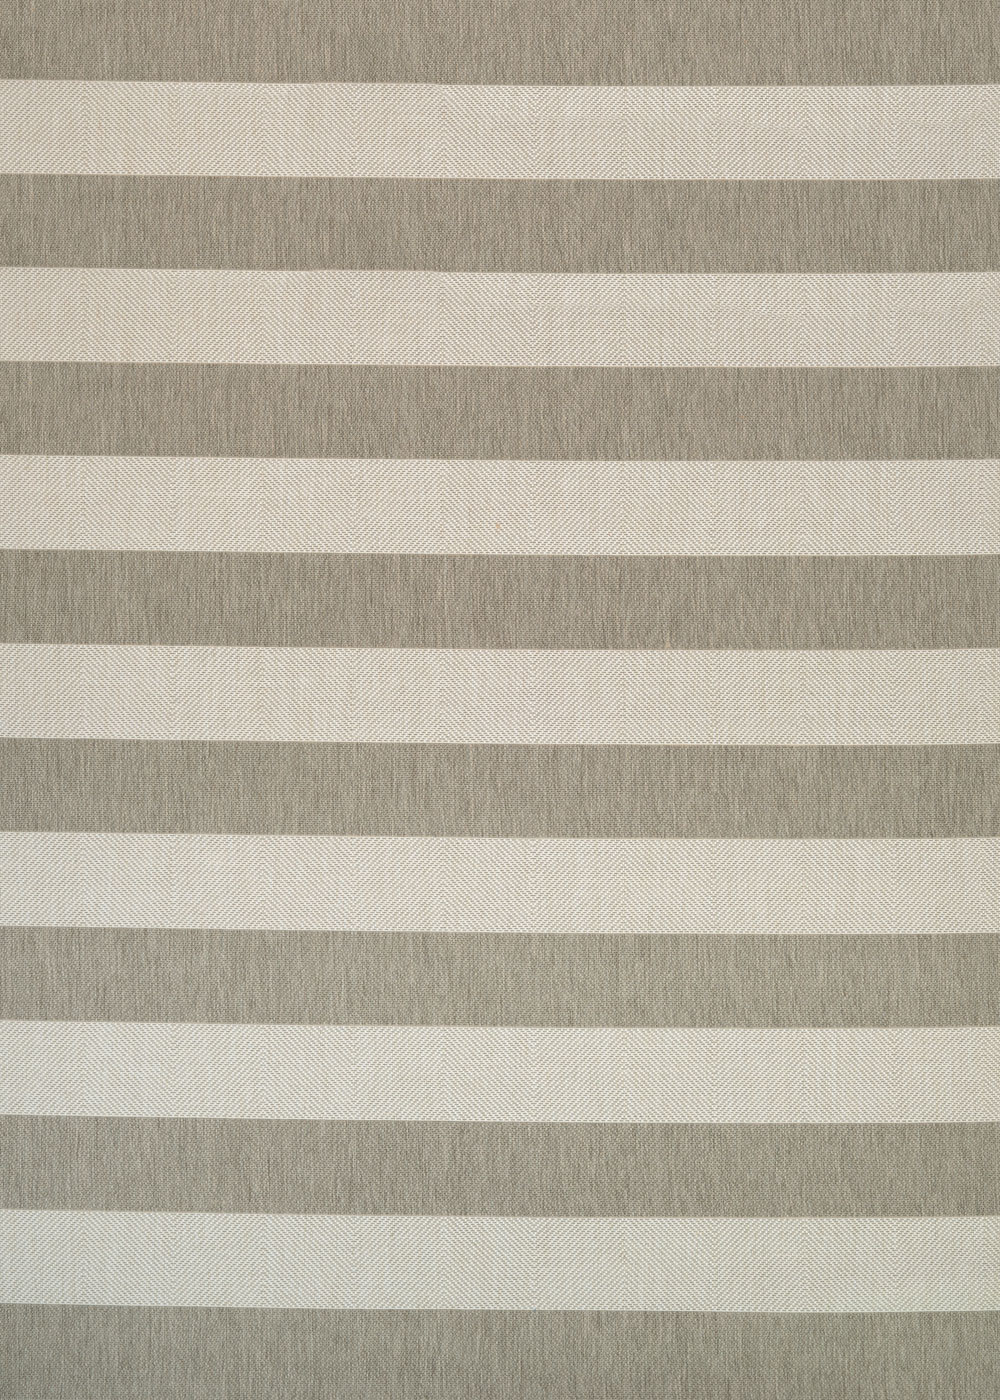 Couristan AFUERA YACHT CLUB TAN/IVORY Rug